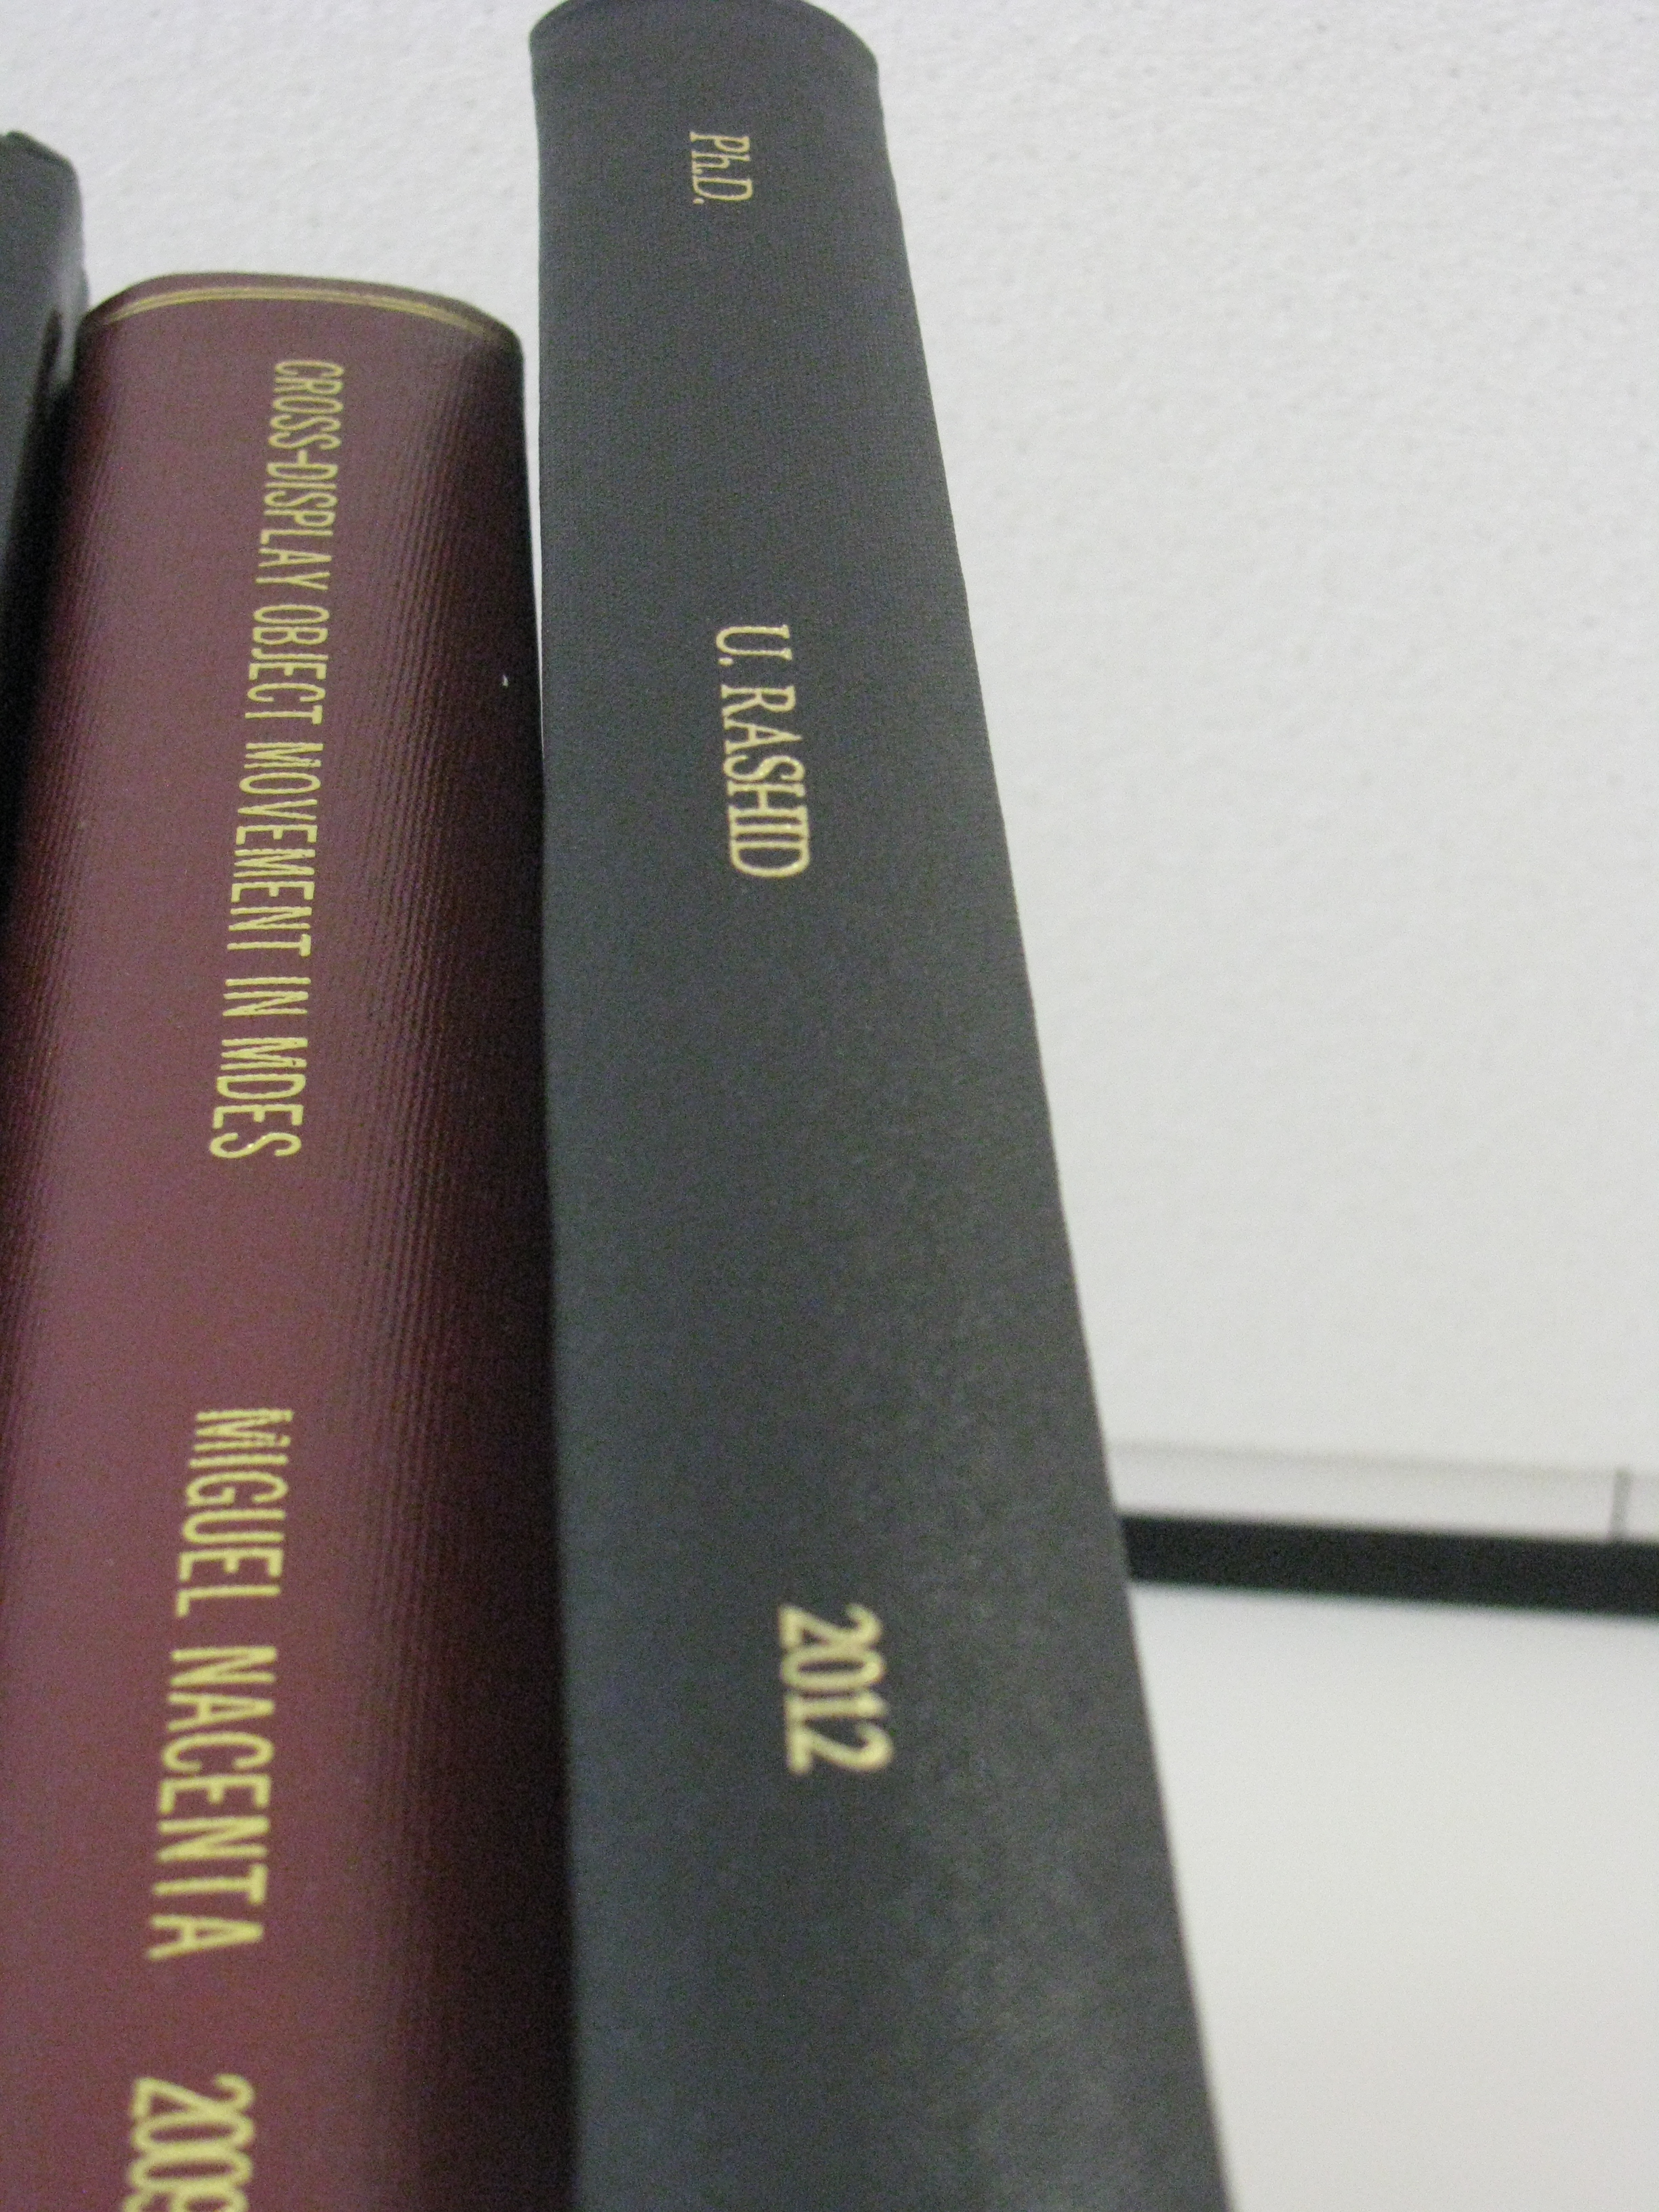 Phd thesis copies